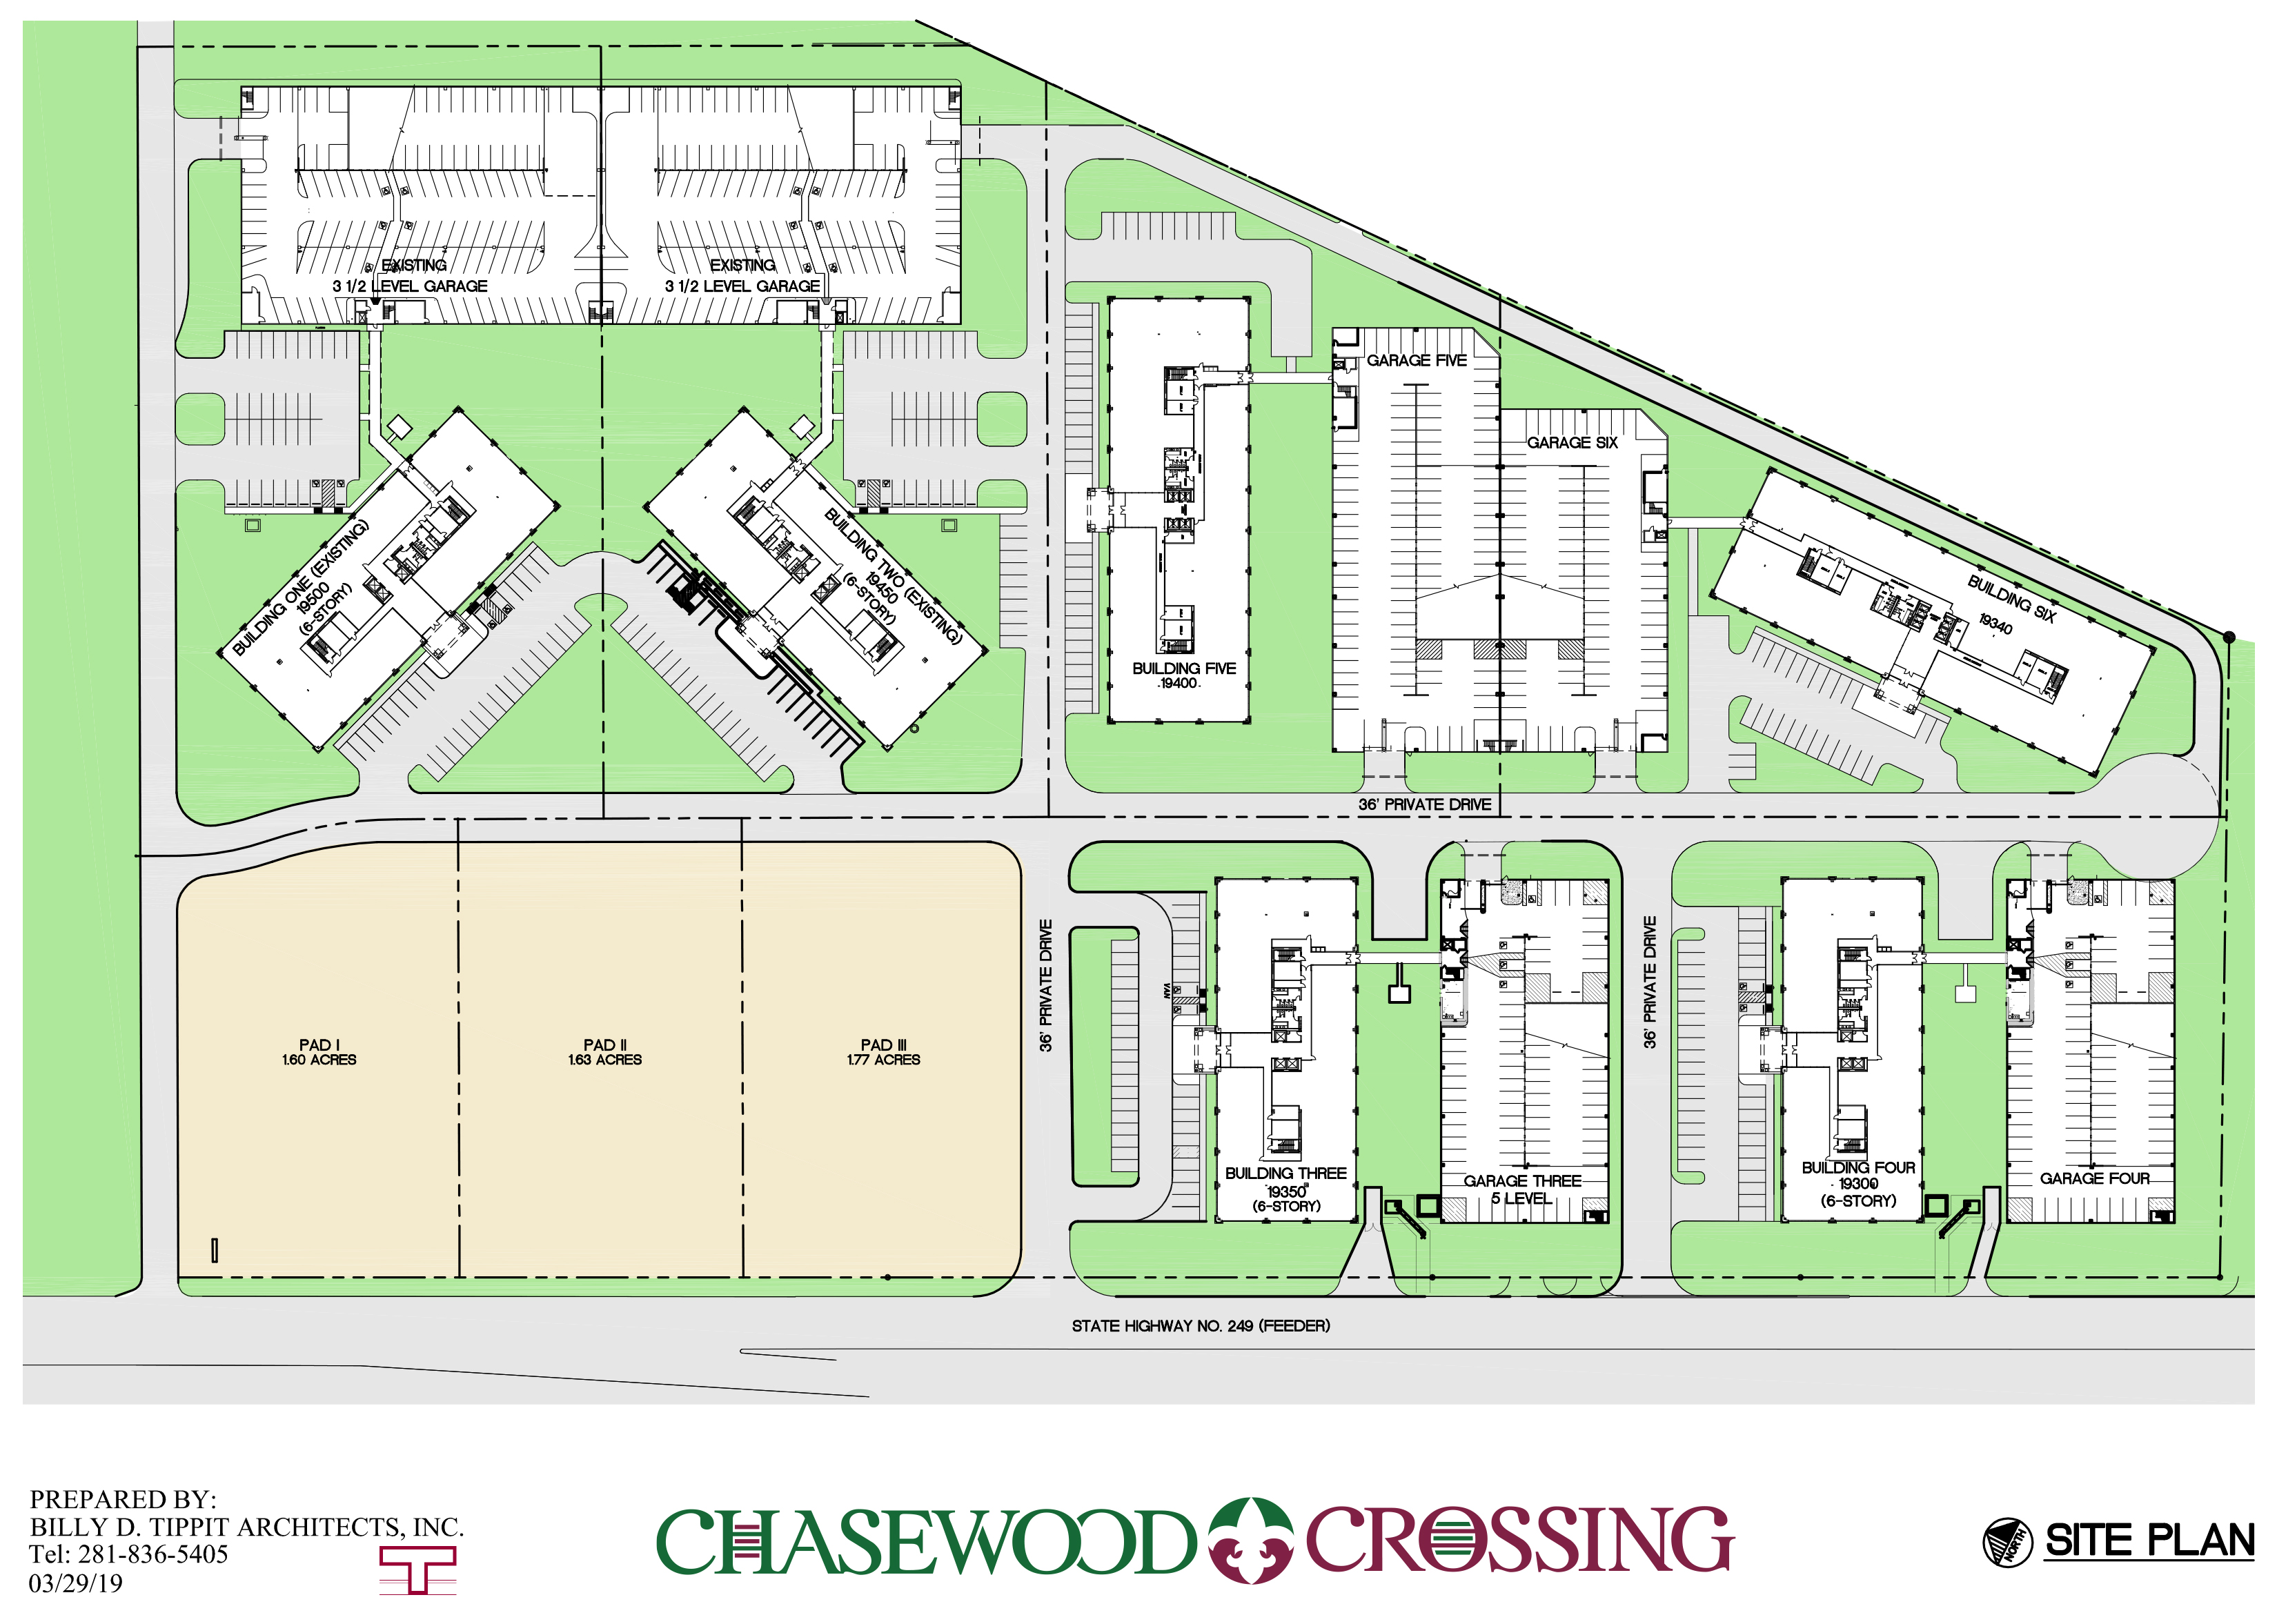 Chasewood Crossing 249SITEPLAN